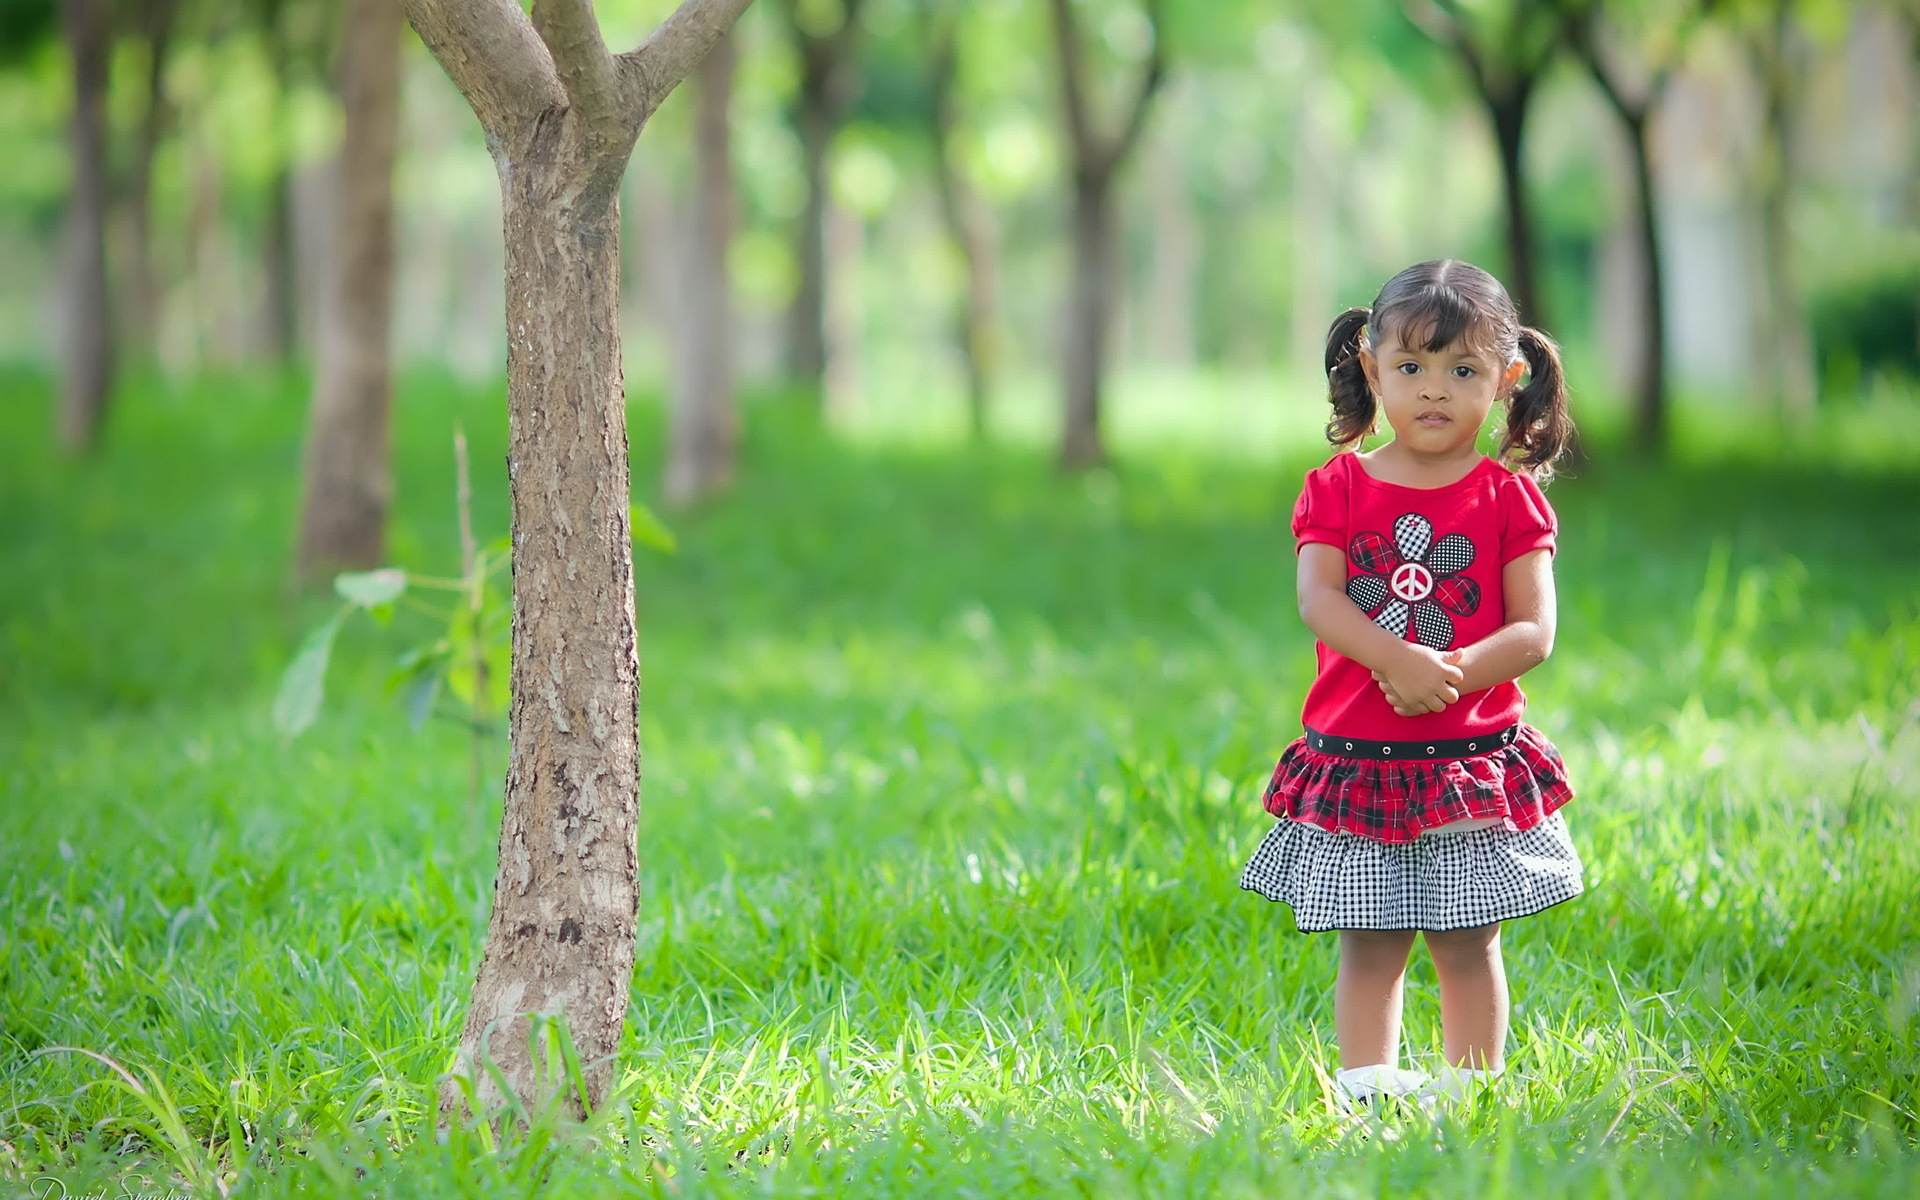 Small child Love Wallpaper : child Full HD Wallpaper and Background Image 1920x1200 ID:280917